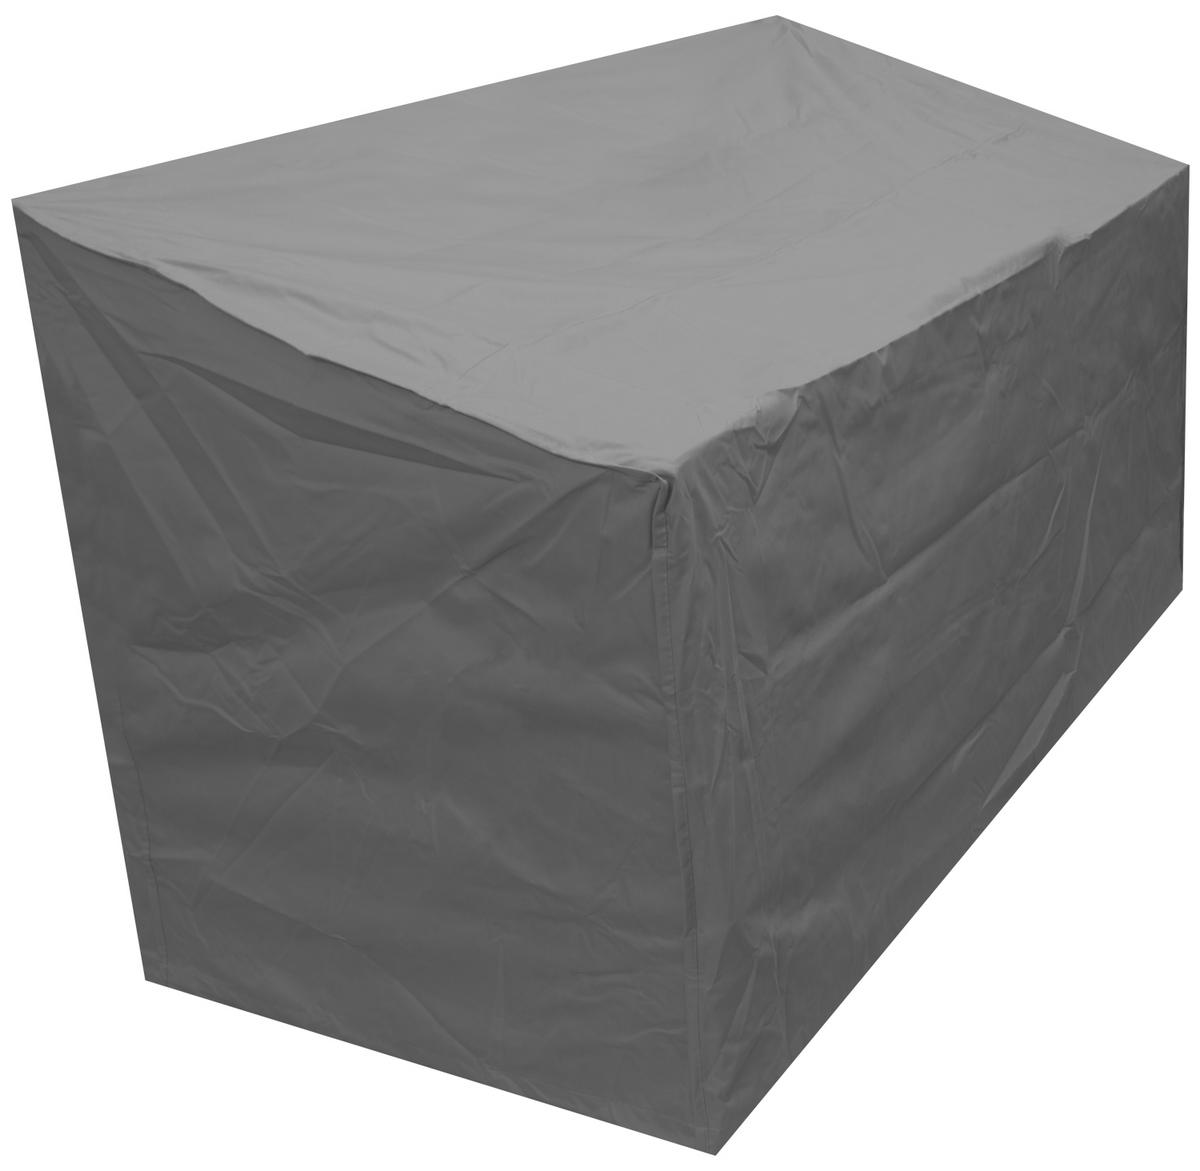 Oxbridge Large (4 Seater) Bench Cover GREY